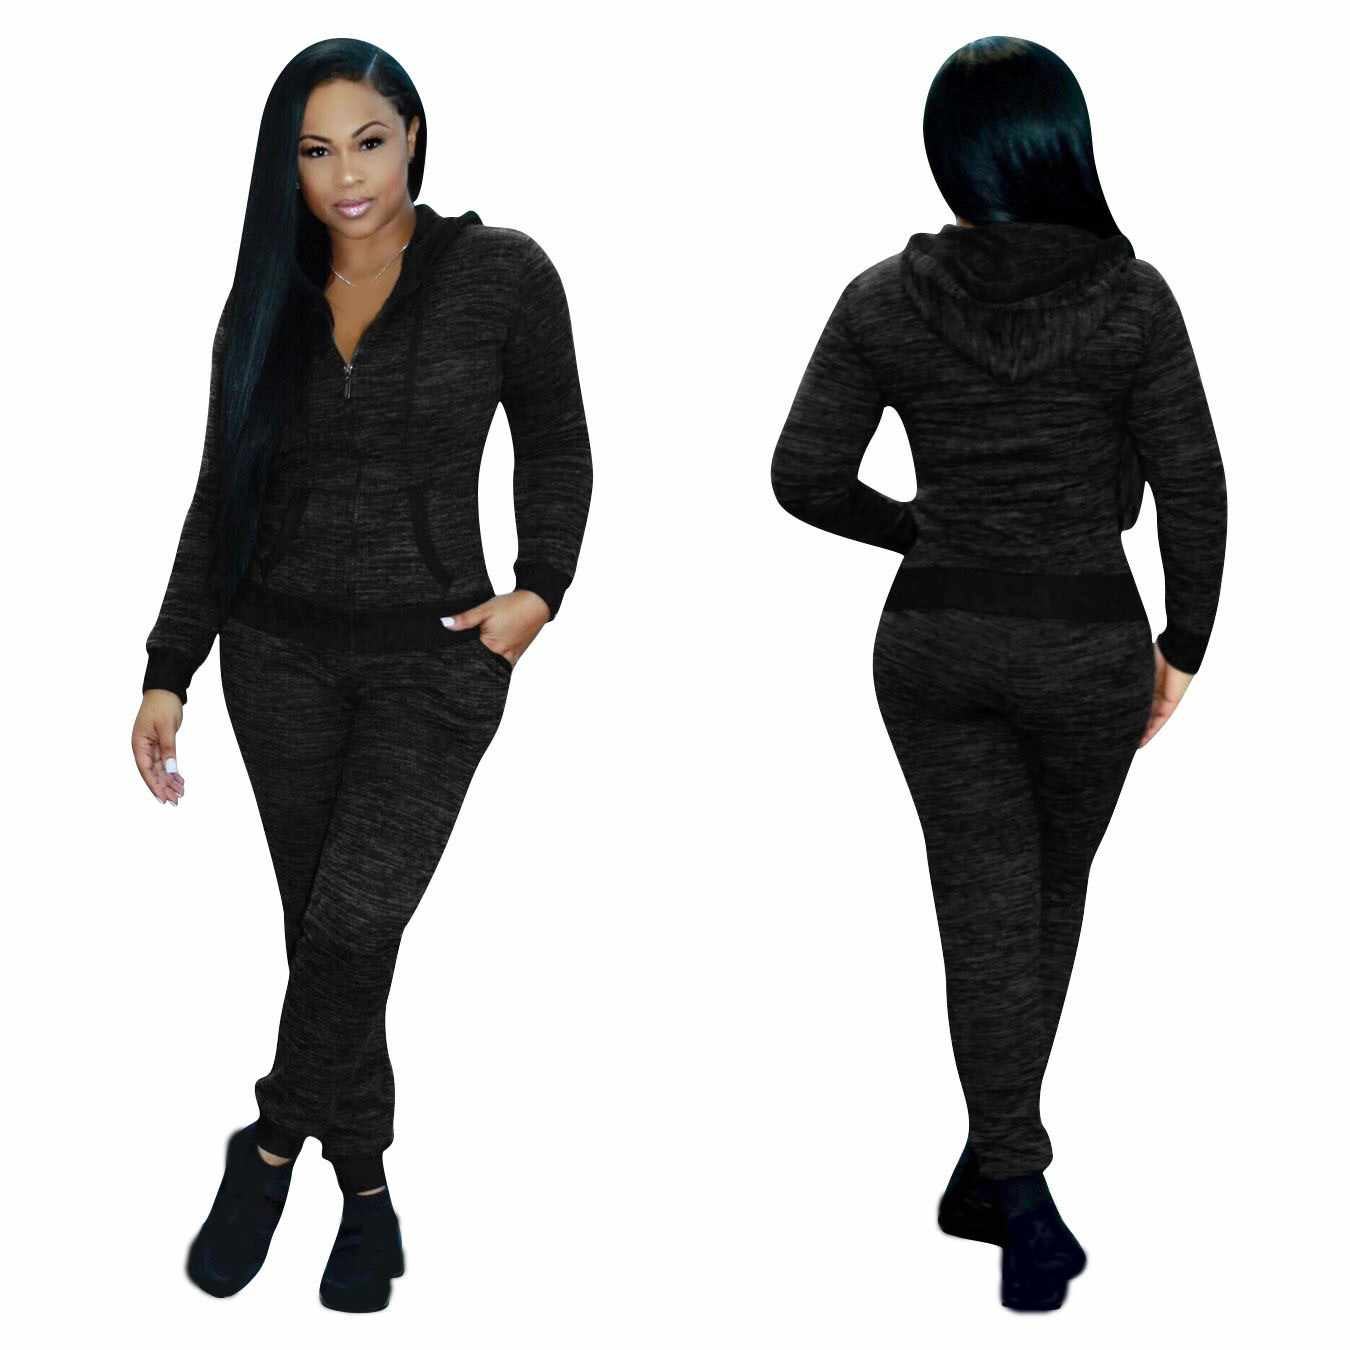 Loose Women Hooded Hoodies Solid Long Sleeve Sweatshirt Set Female Tracksuit 2 Pieces Set